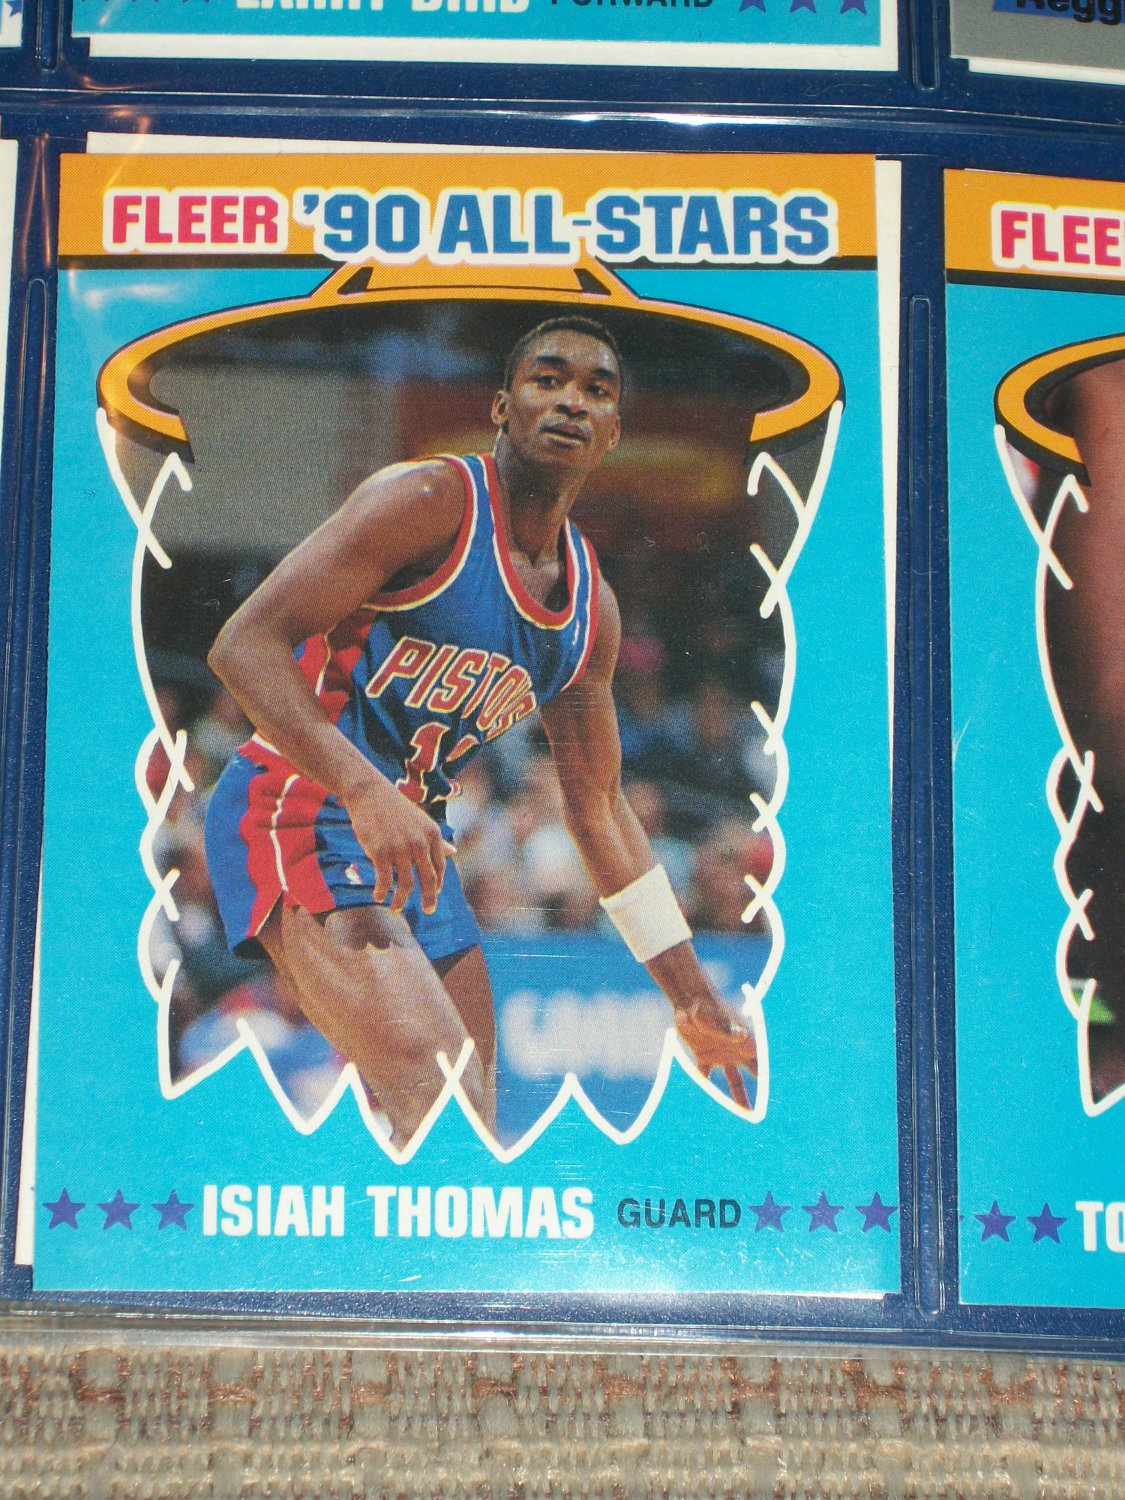 isiah thomas 1990 fleer all